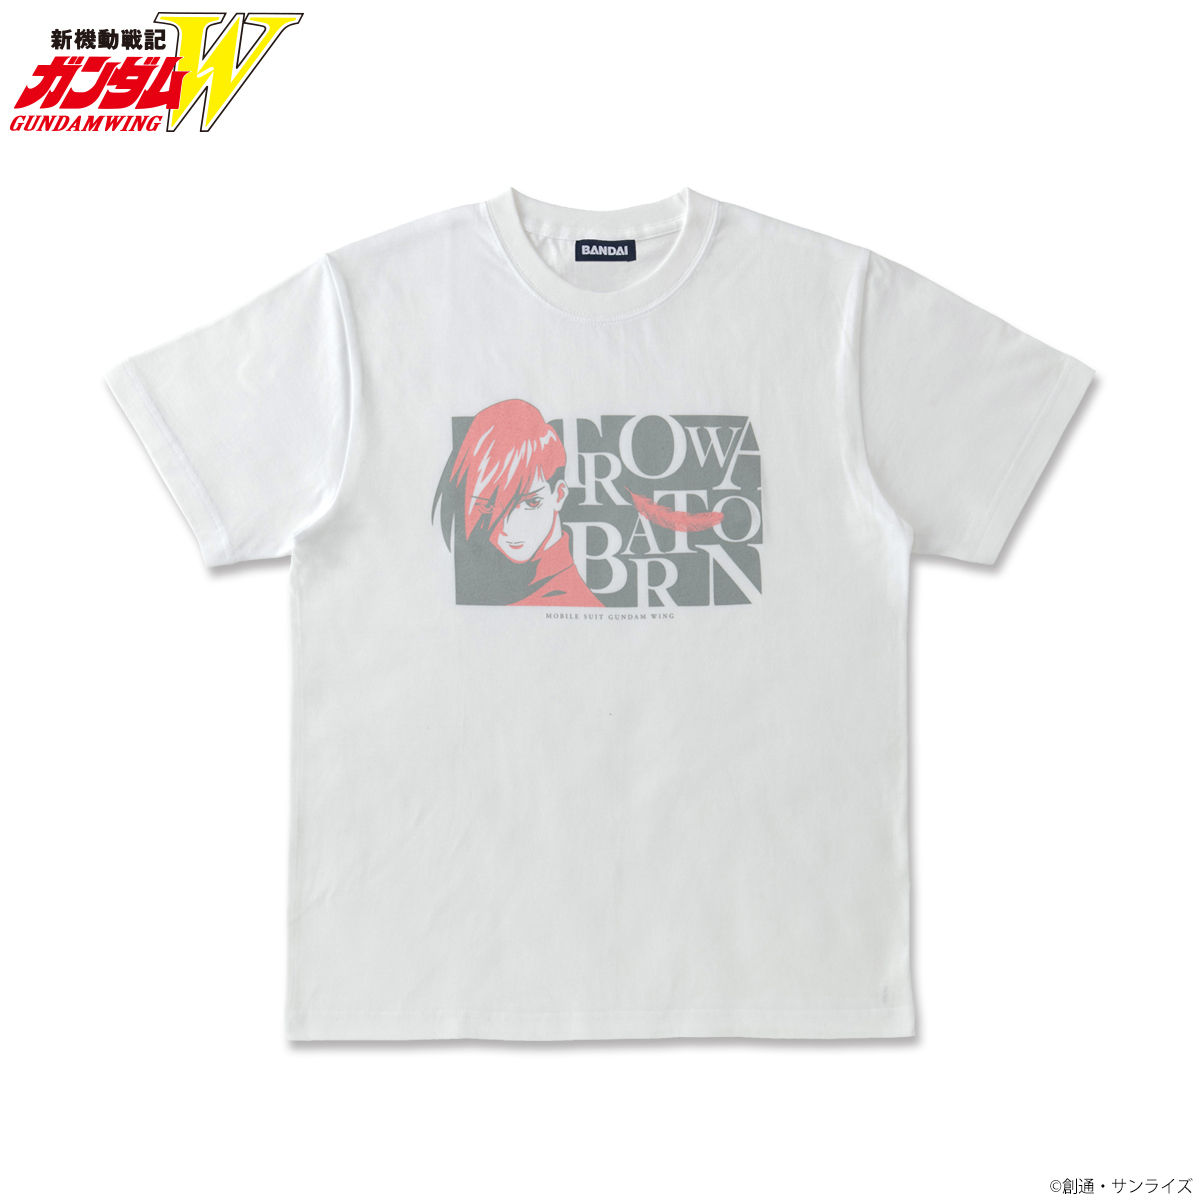 Mobile Suit Gundam Wing Tricolor-themed T-shirt